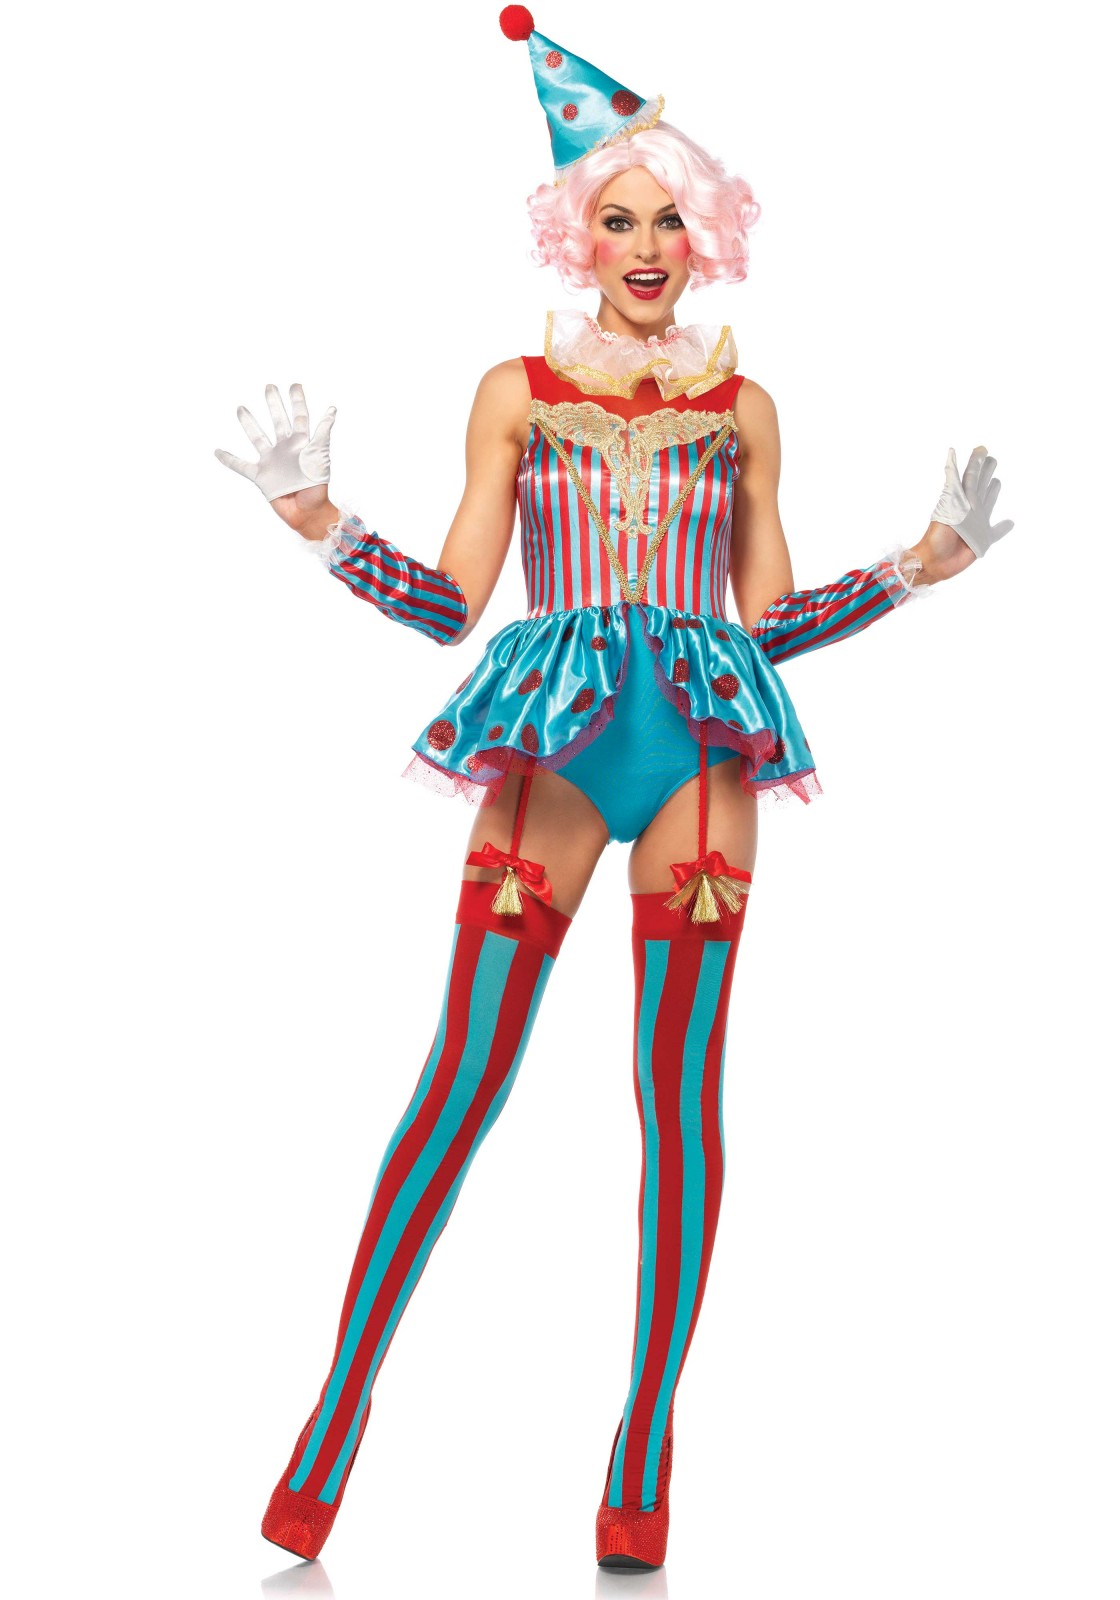 4 PC. Circus Clown costume set, includes a satin garter zipper back teddy with glitter polka dot peplum skirt and lace appliqué accent, ruffle neck piece,  arm cuffs and matching clown hat.